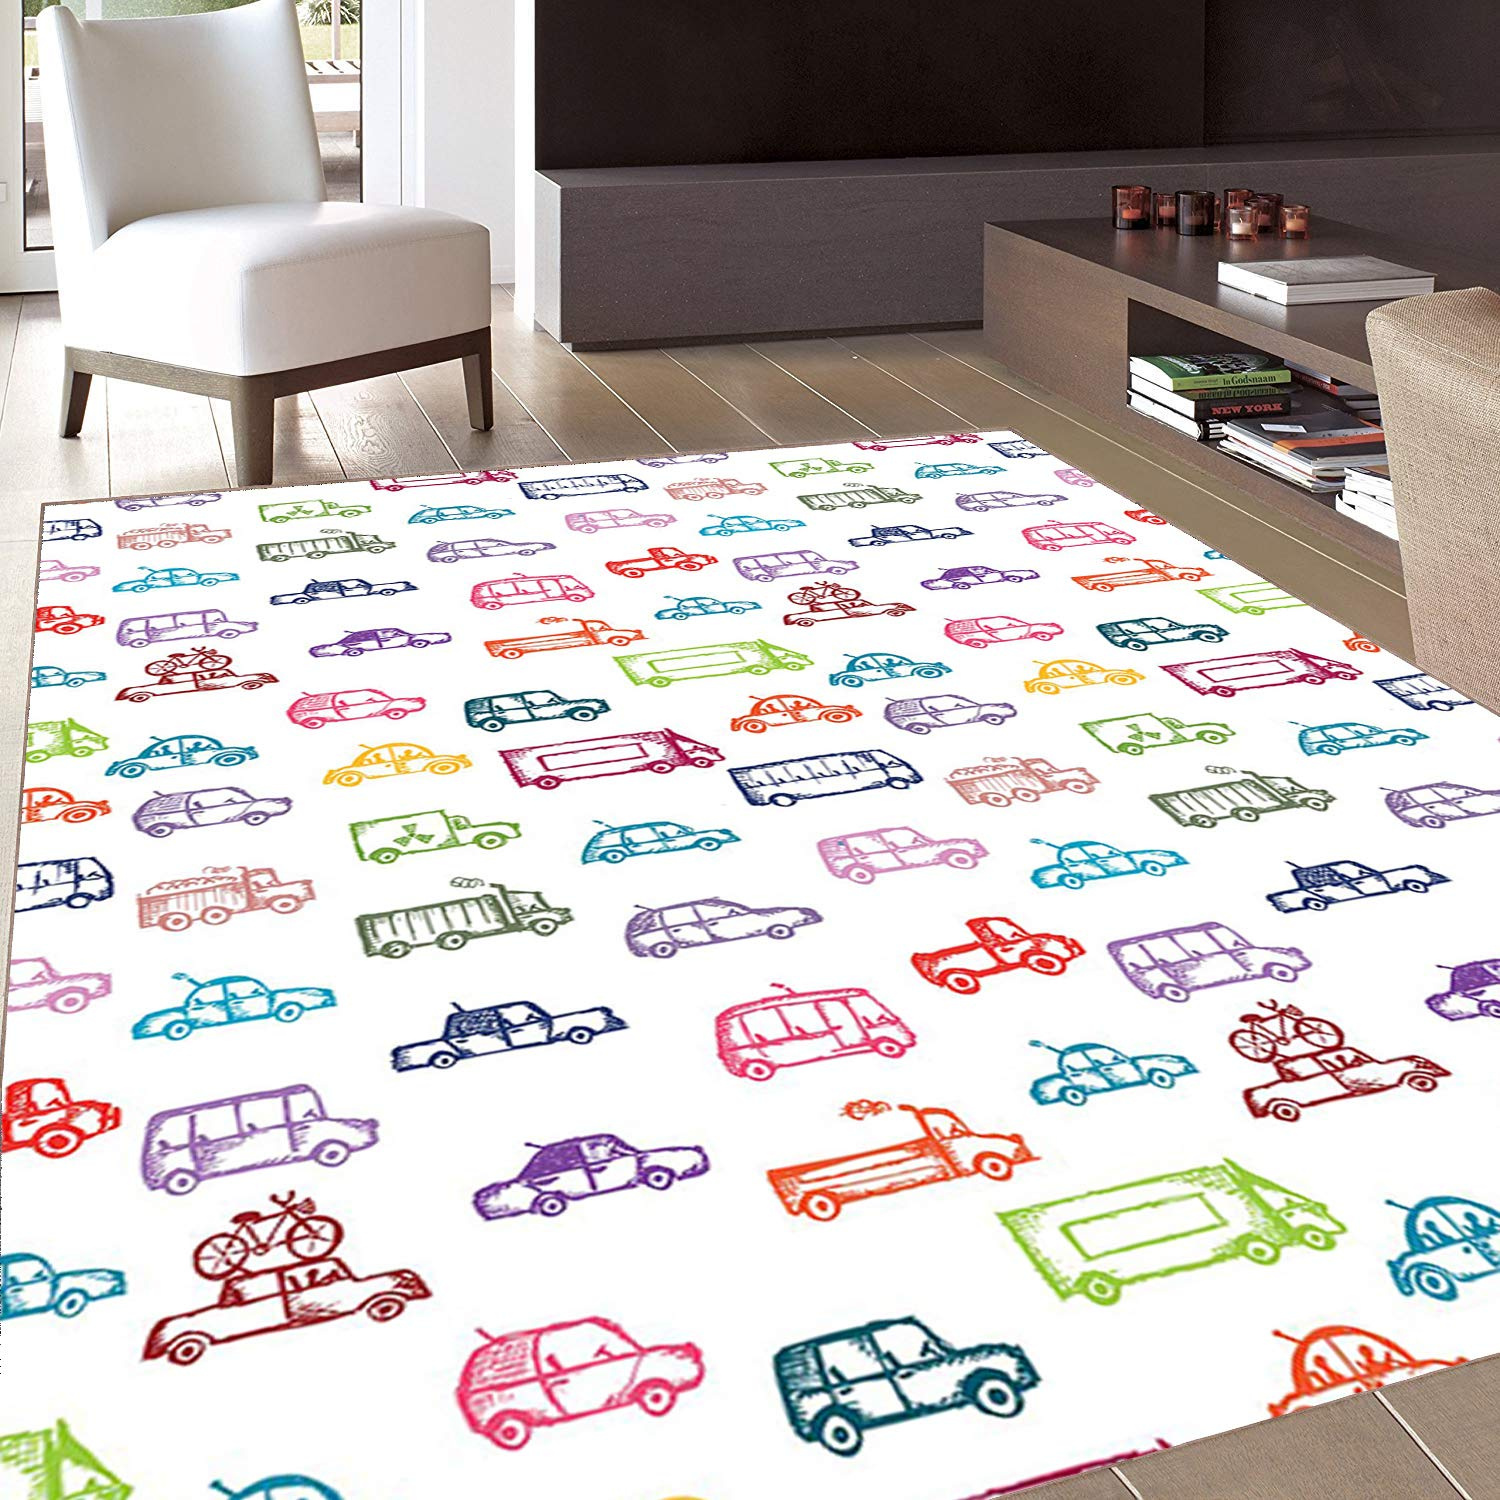 Rug,FloorMatRug,Cars,AreaRug,Various Types of Vehicles Bus Truck Garbage Truck Sports Car Vibrant Colored Design,Home mat,4